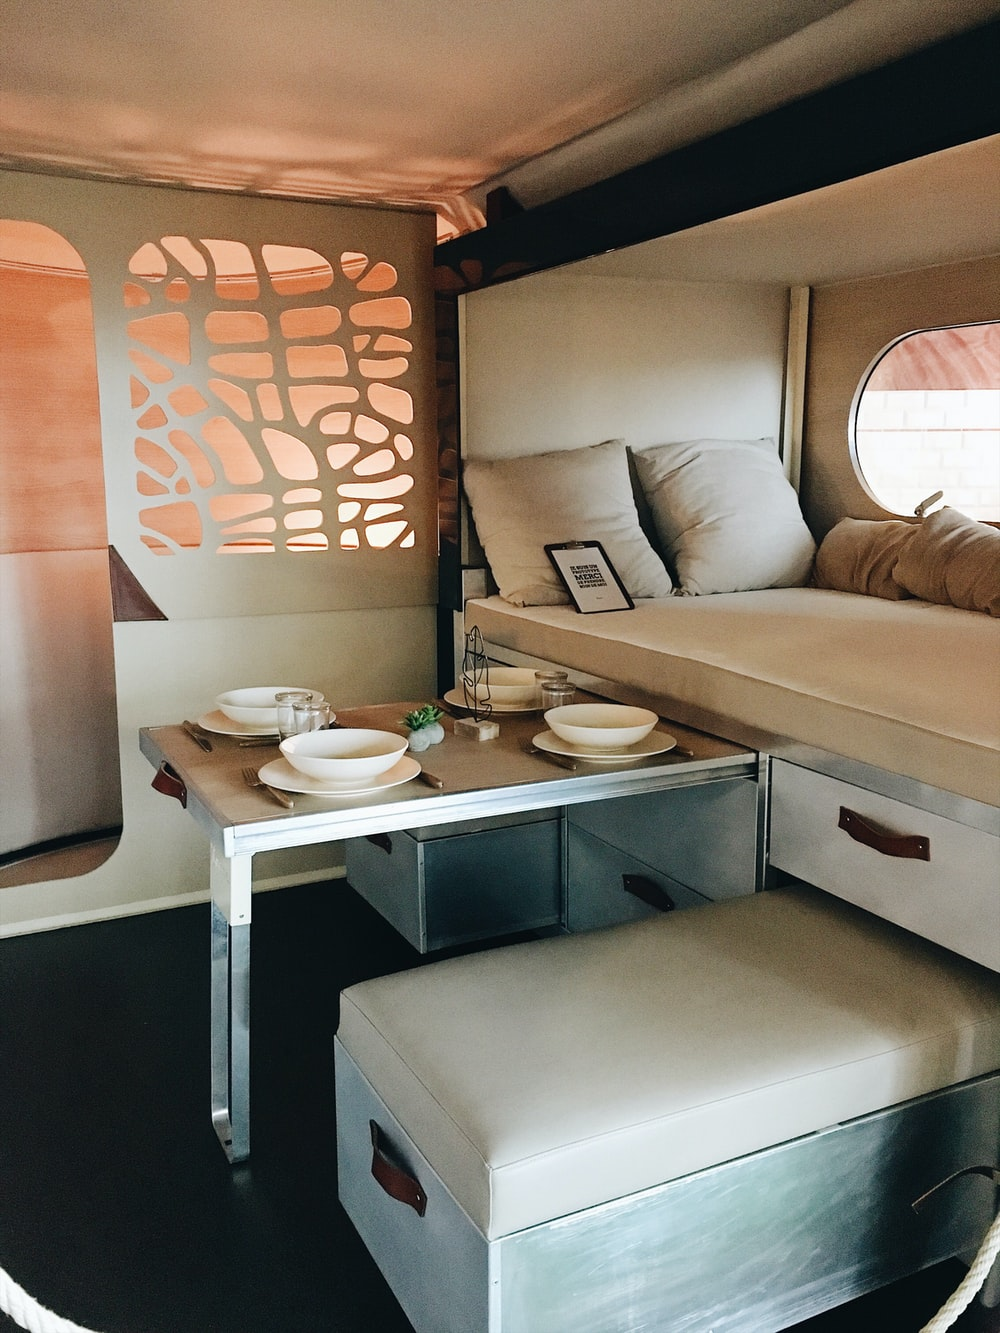 white wooden storage bed and table